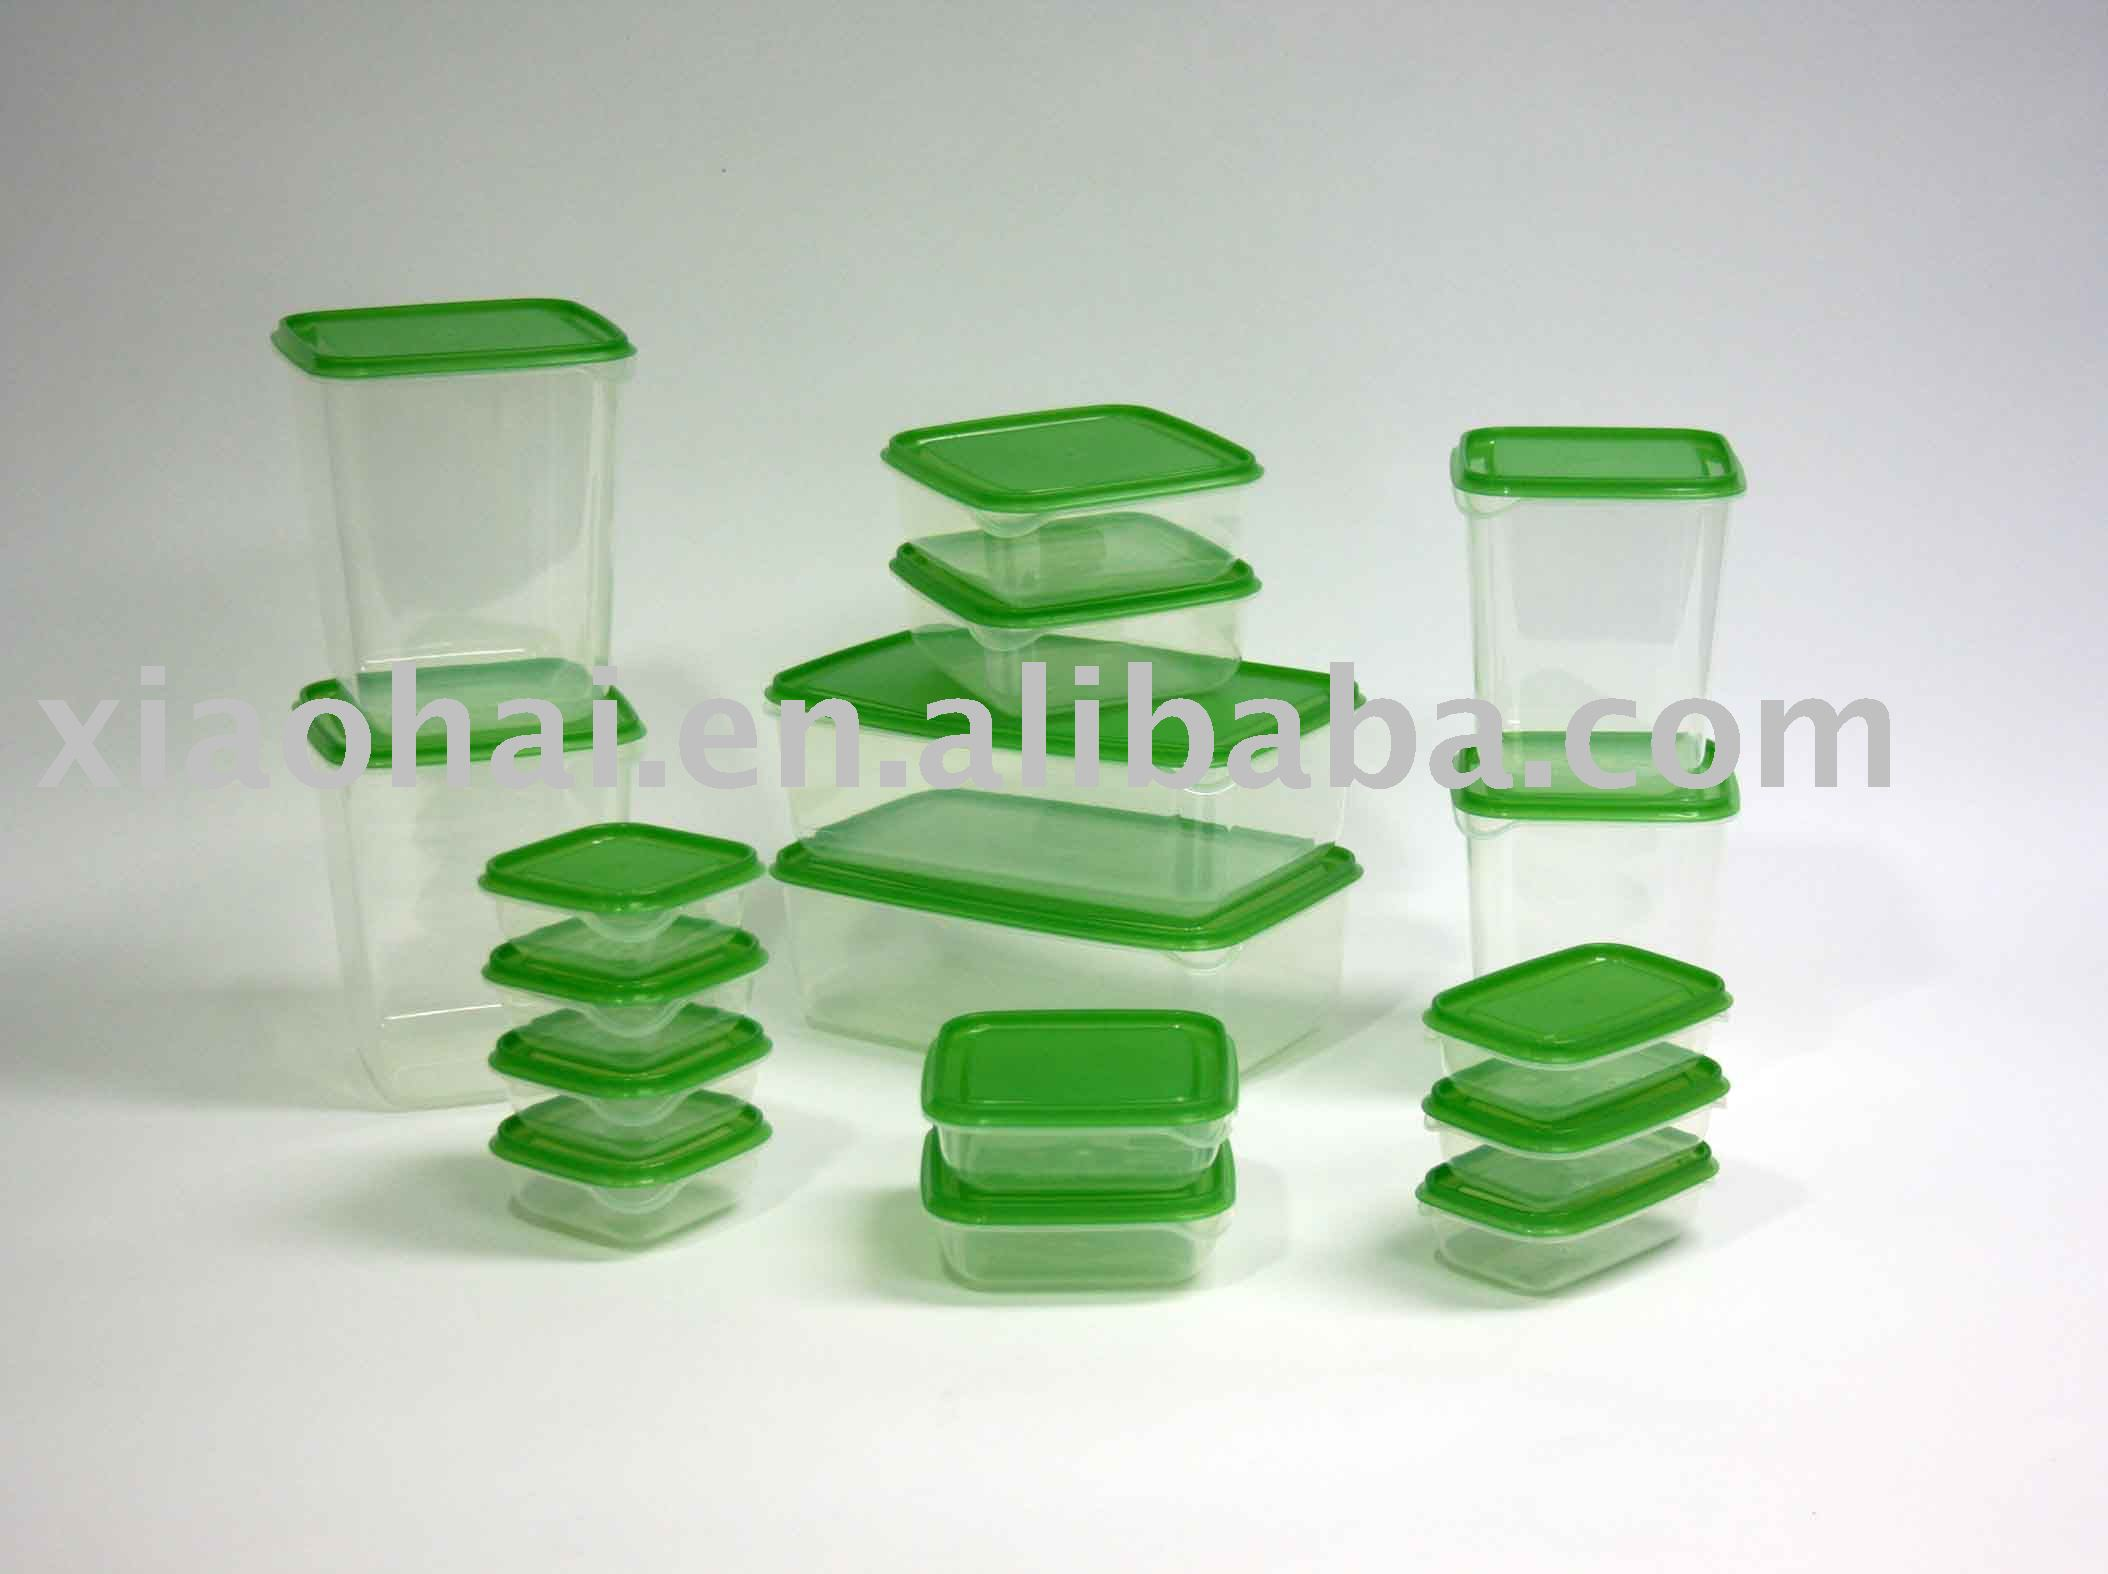 34pcs food container set/food container keep fresh green